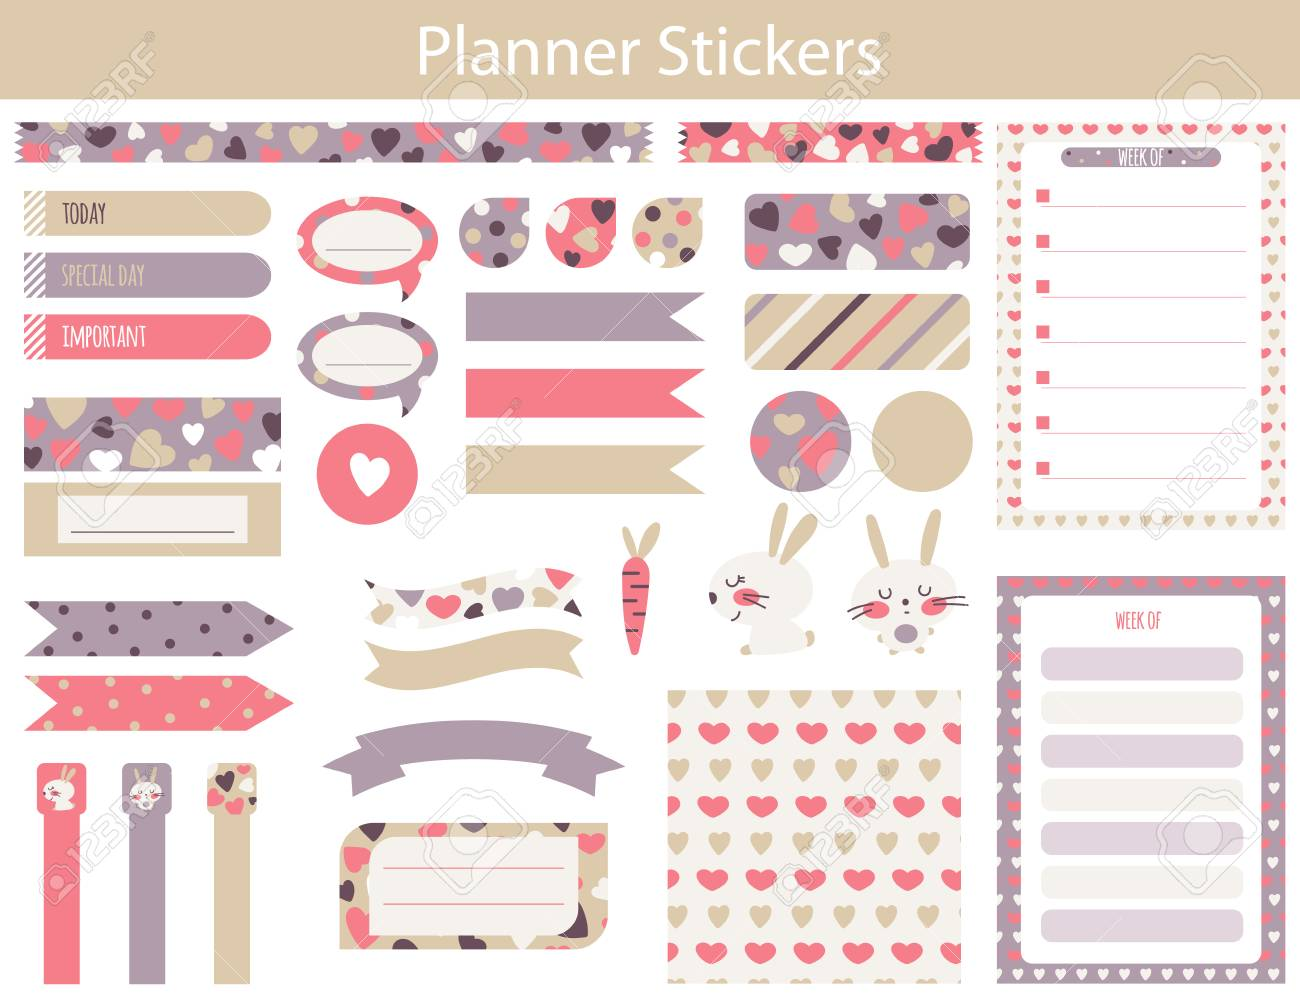 planner stickers with cute hare, carrot and hearts in simple